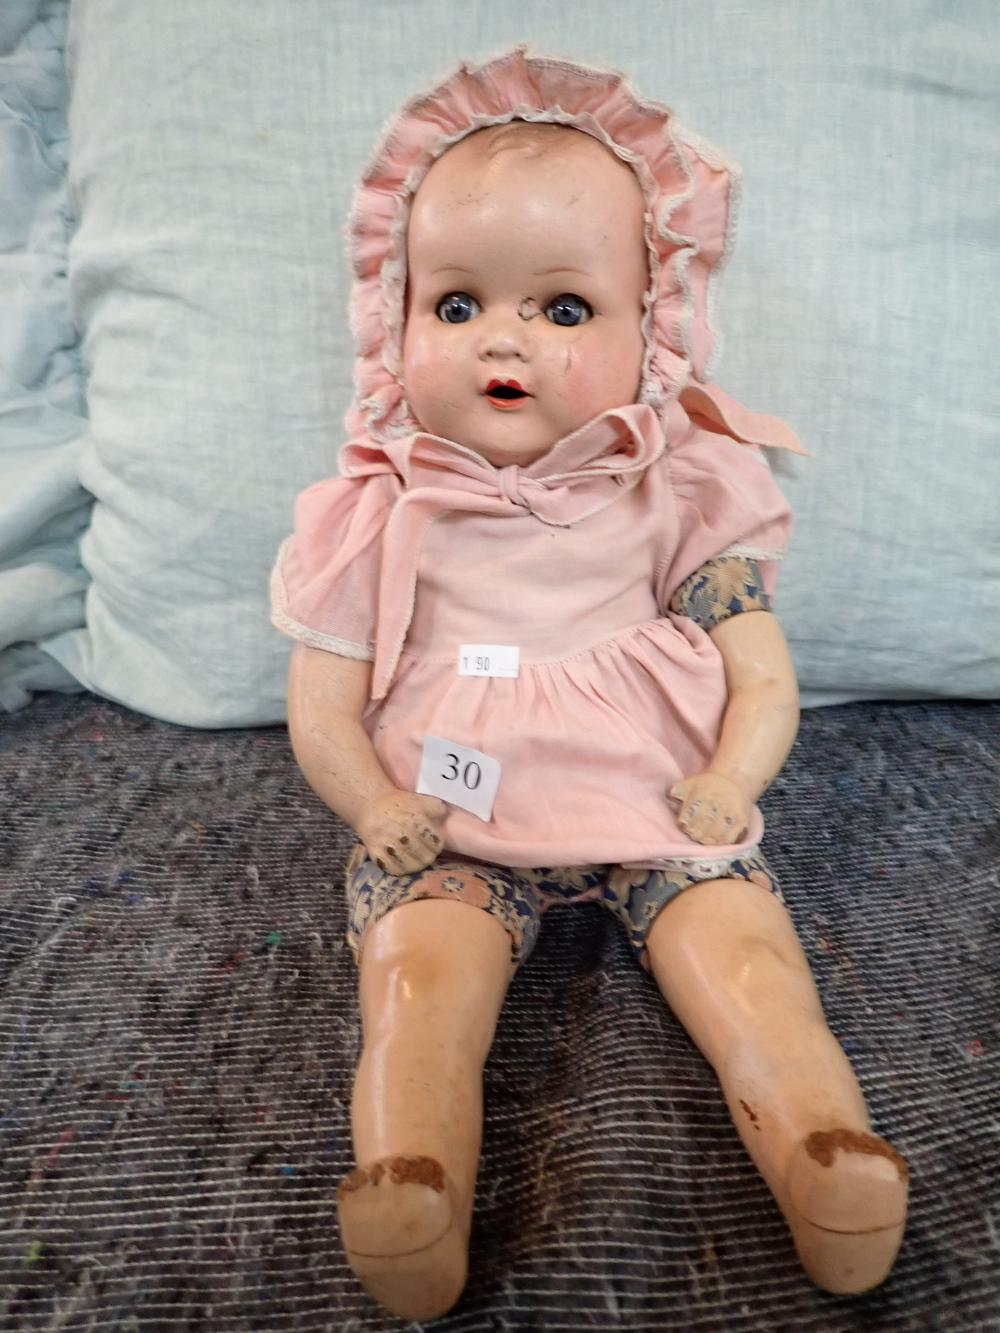 """18"""" AM GERMANY COMPOSITION DOLL, COMPOSITION HEAD, ARMS AND LEGS, SOME DAMAGE TO TOES ON FOOT, DAMAGE TO FACE NEAR RIGHT EYE, CLOTH BODY, VOICE BOX IN BACK OF BODY"""